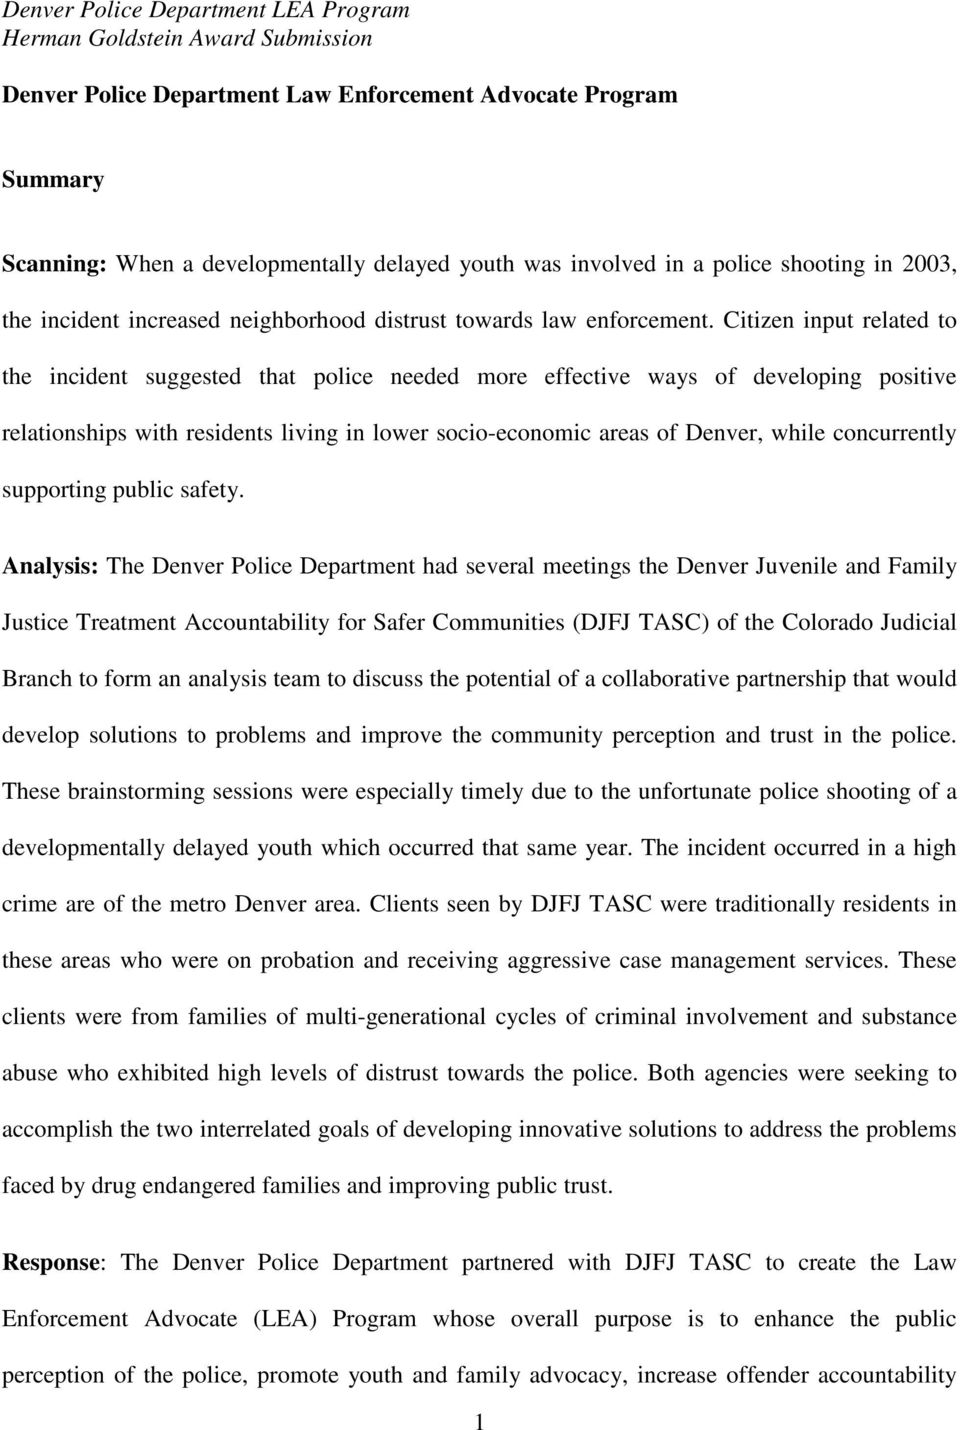 Citizen input related to the incident suggested that police needed more effective ways of developing positive relationships with residents living in lower socio-economic areas of Denver, while